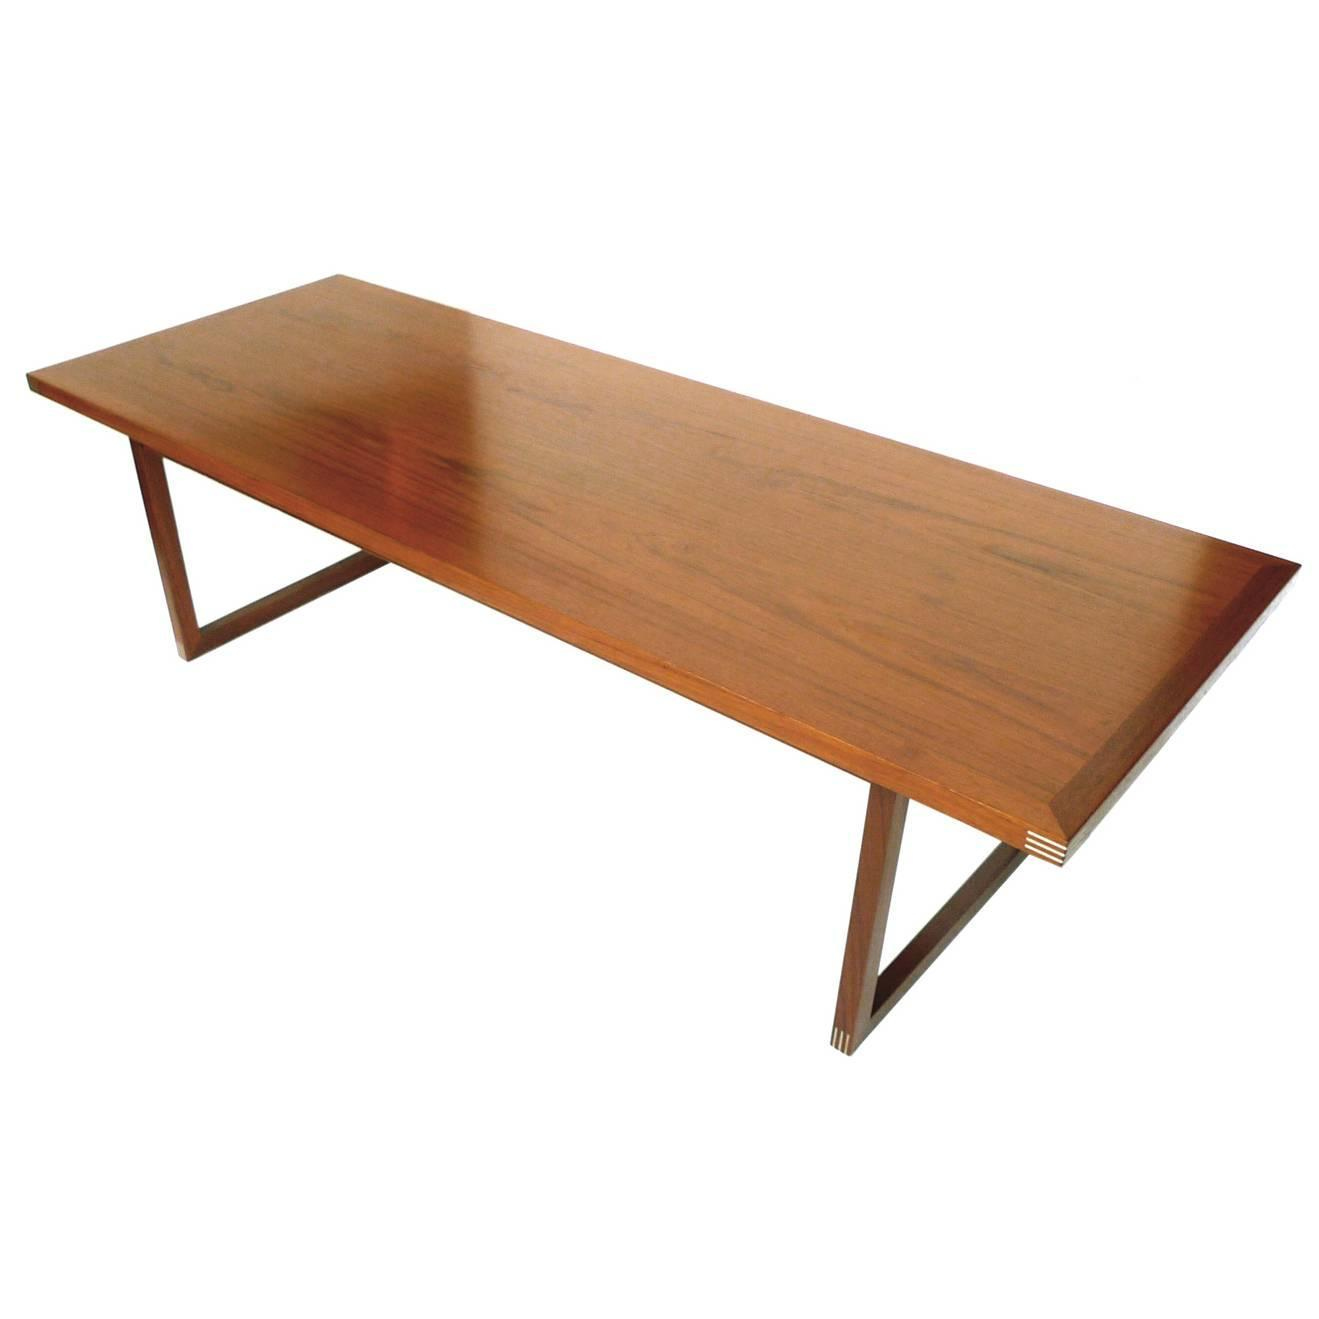 Midcentury Danish Teak Coffee Table By Rud Thygesen For Heltborg